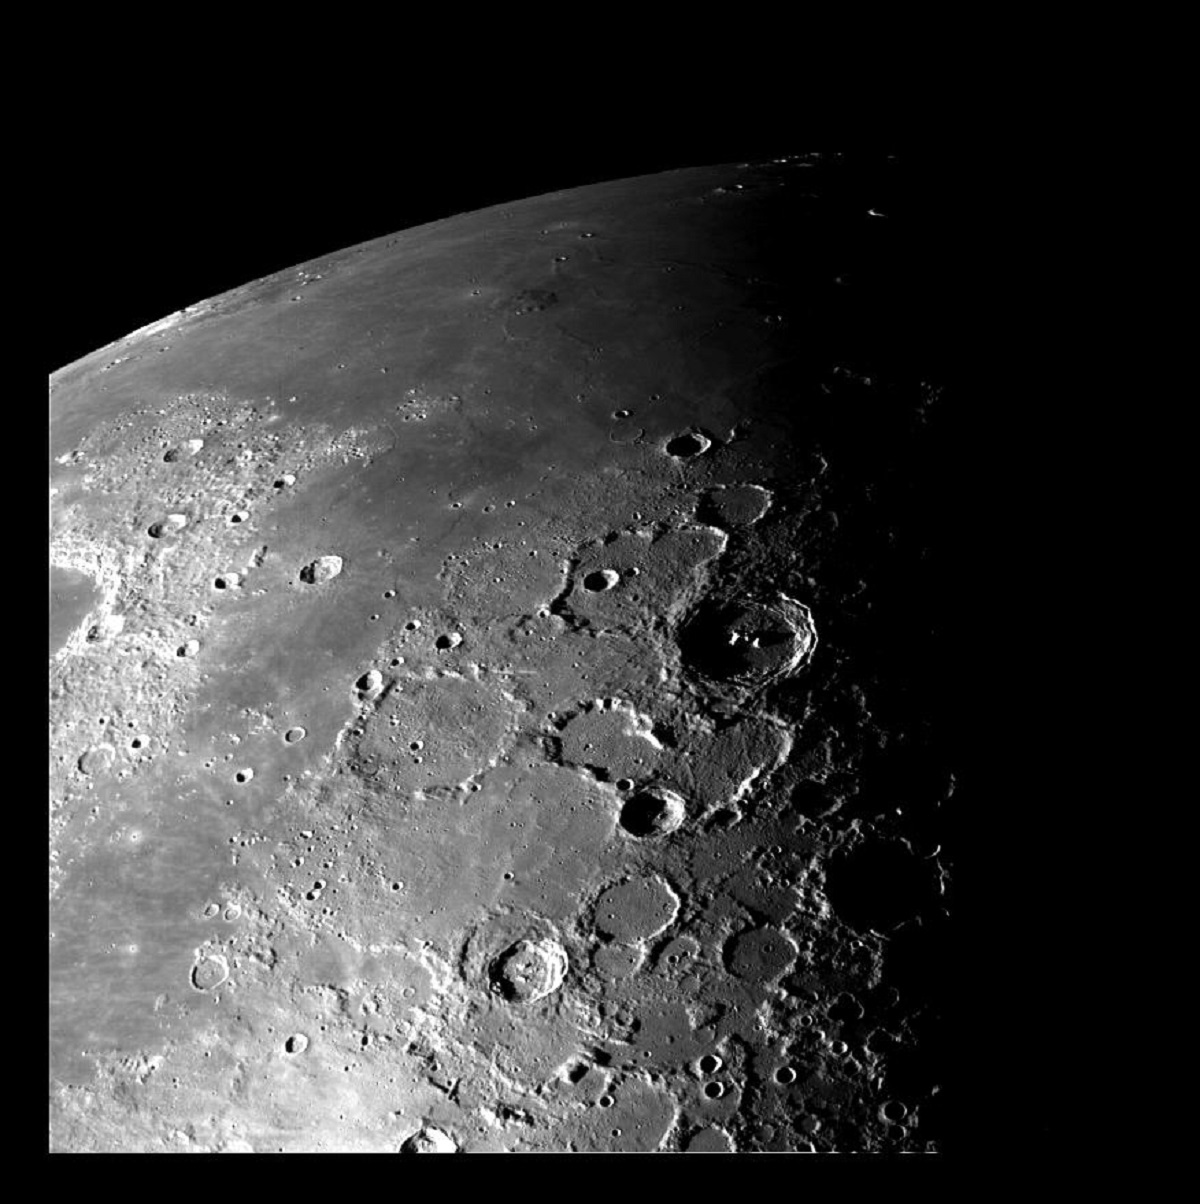 2 Moon - North Pole - NASA photos on Silver Magazine www.silvermagazine.co.uk